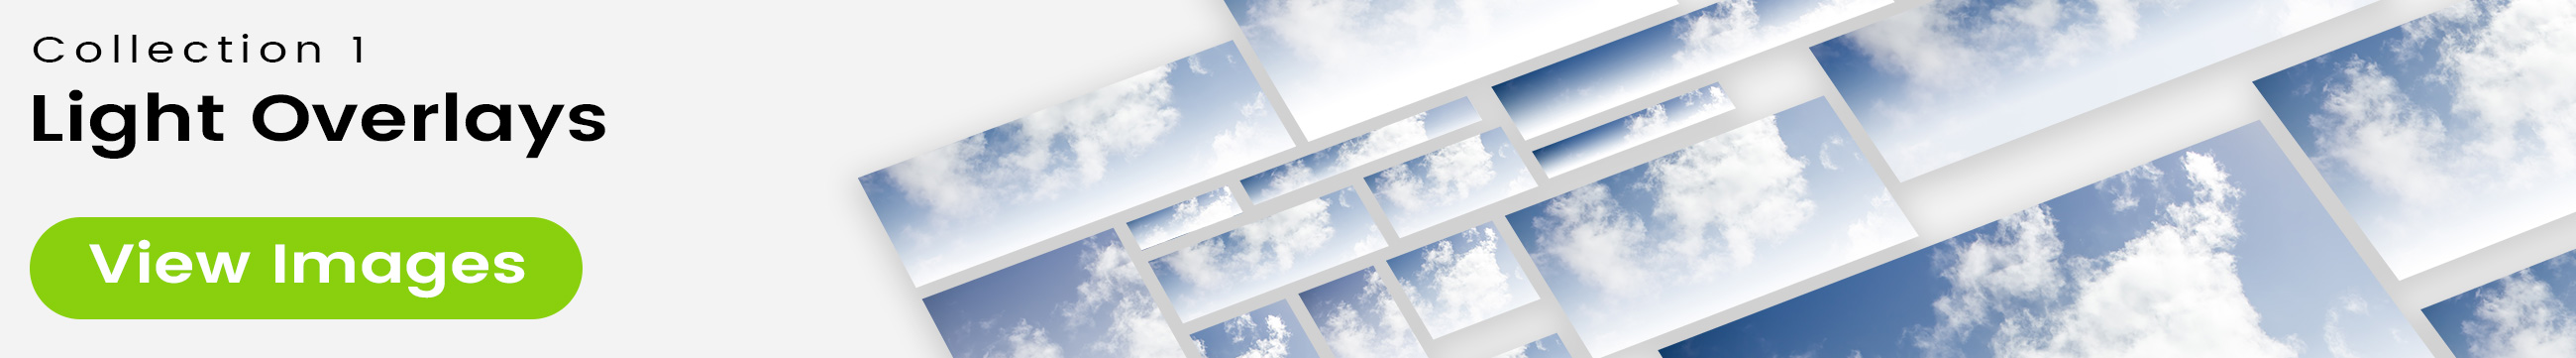 See 25 bonus images included with clouds stock image 9485. Collection 1 of 4 features a light overlay design.